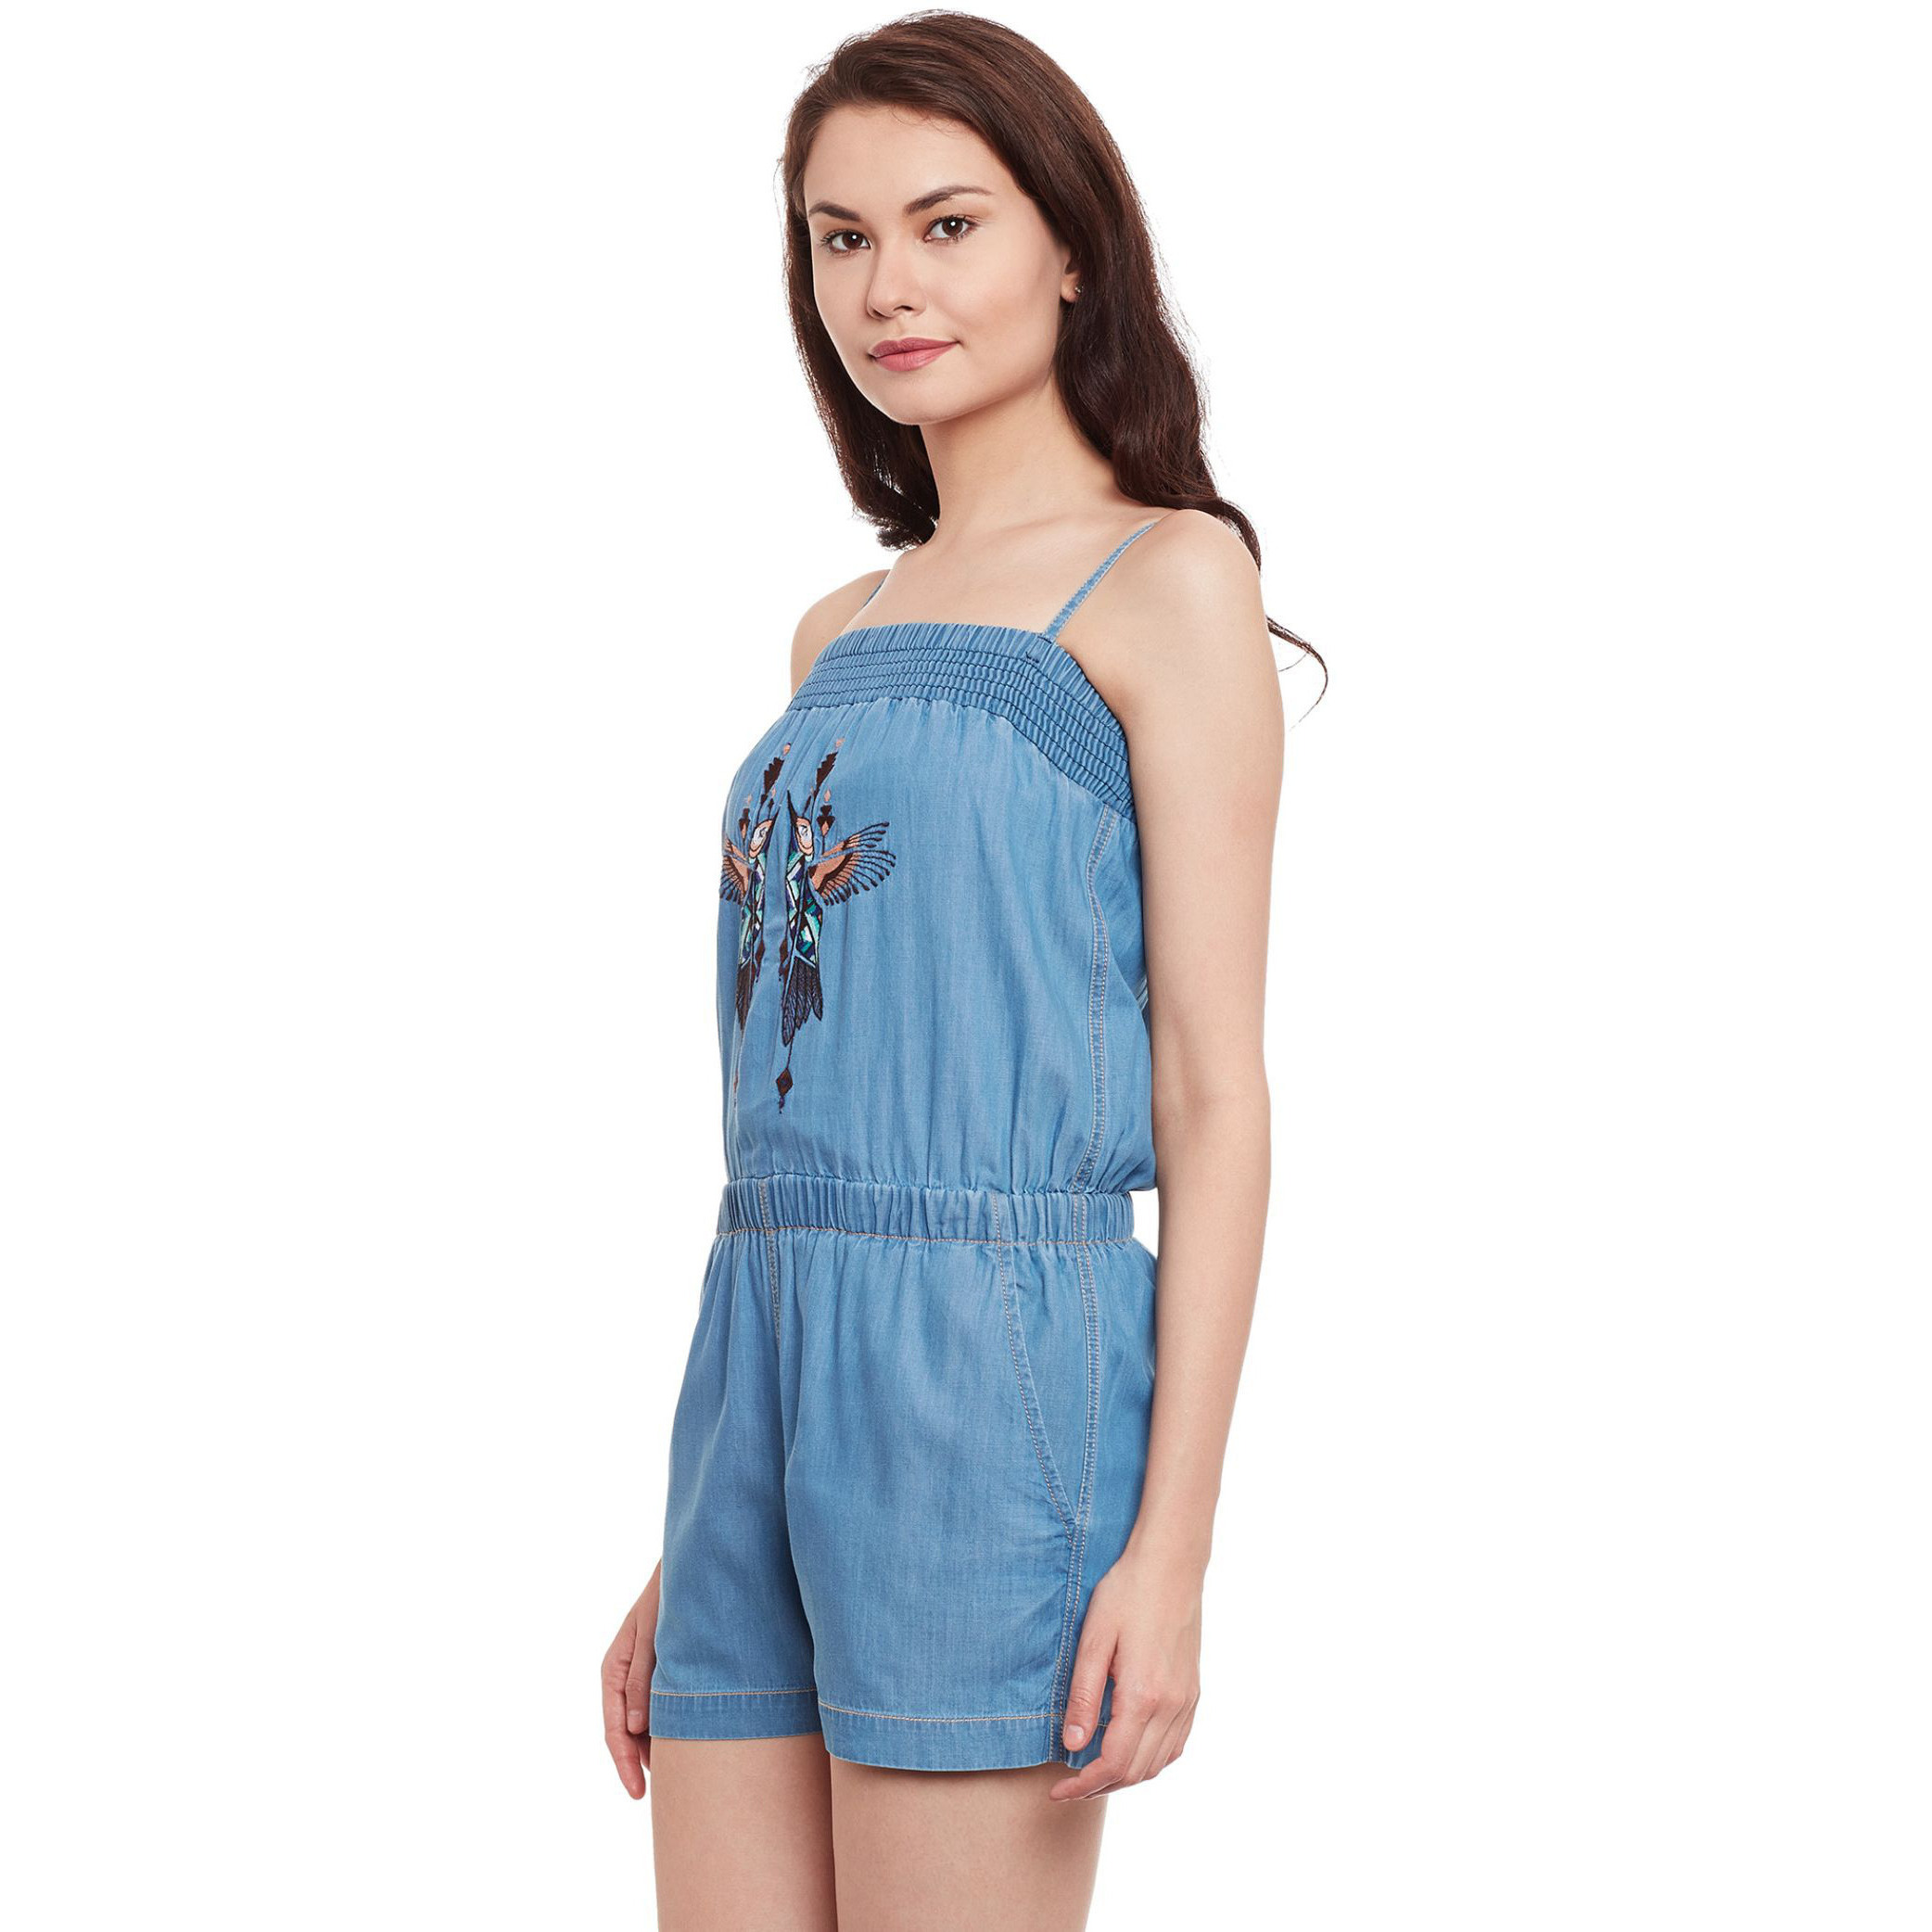 Denim Romper With Adjustable Straps And Front Embroidery In Light Wash